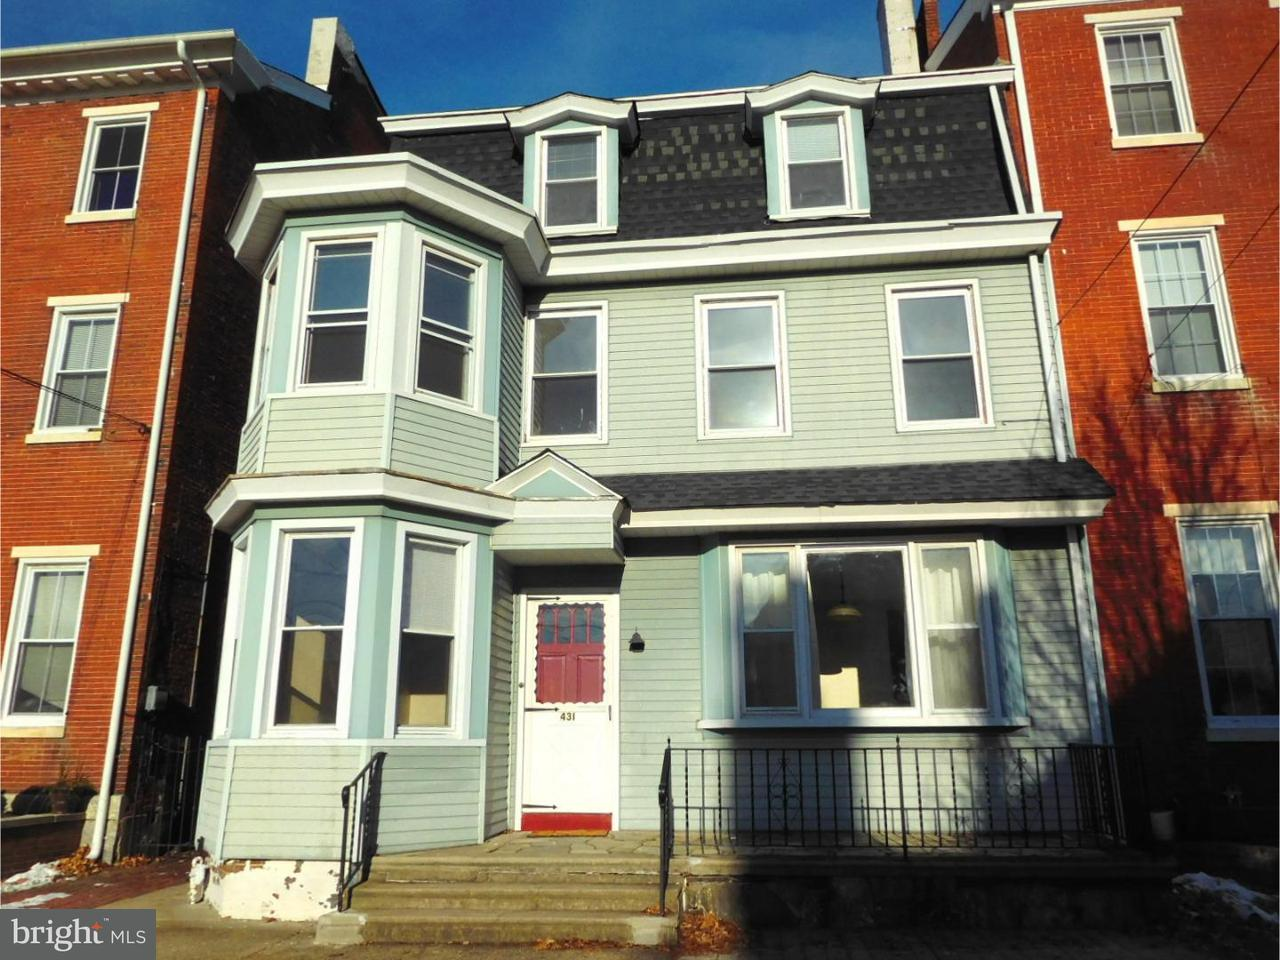 Single Family Home for Rent at 431 RADCLIFFE ST #3RD FL Bristol, Pennsylvania 19007 United States